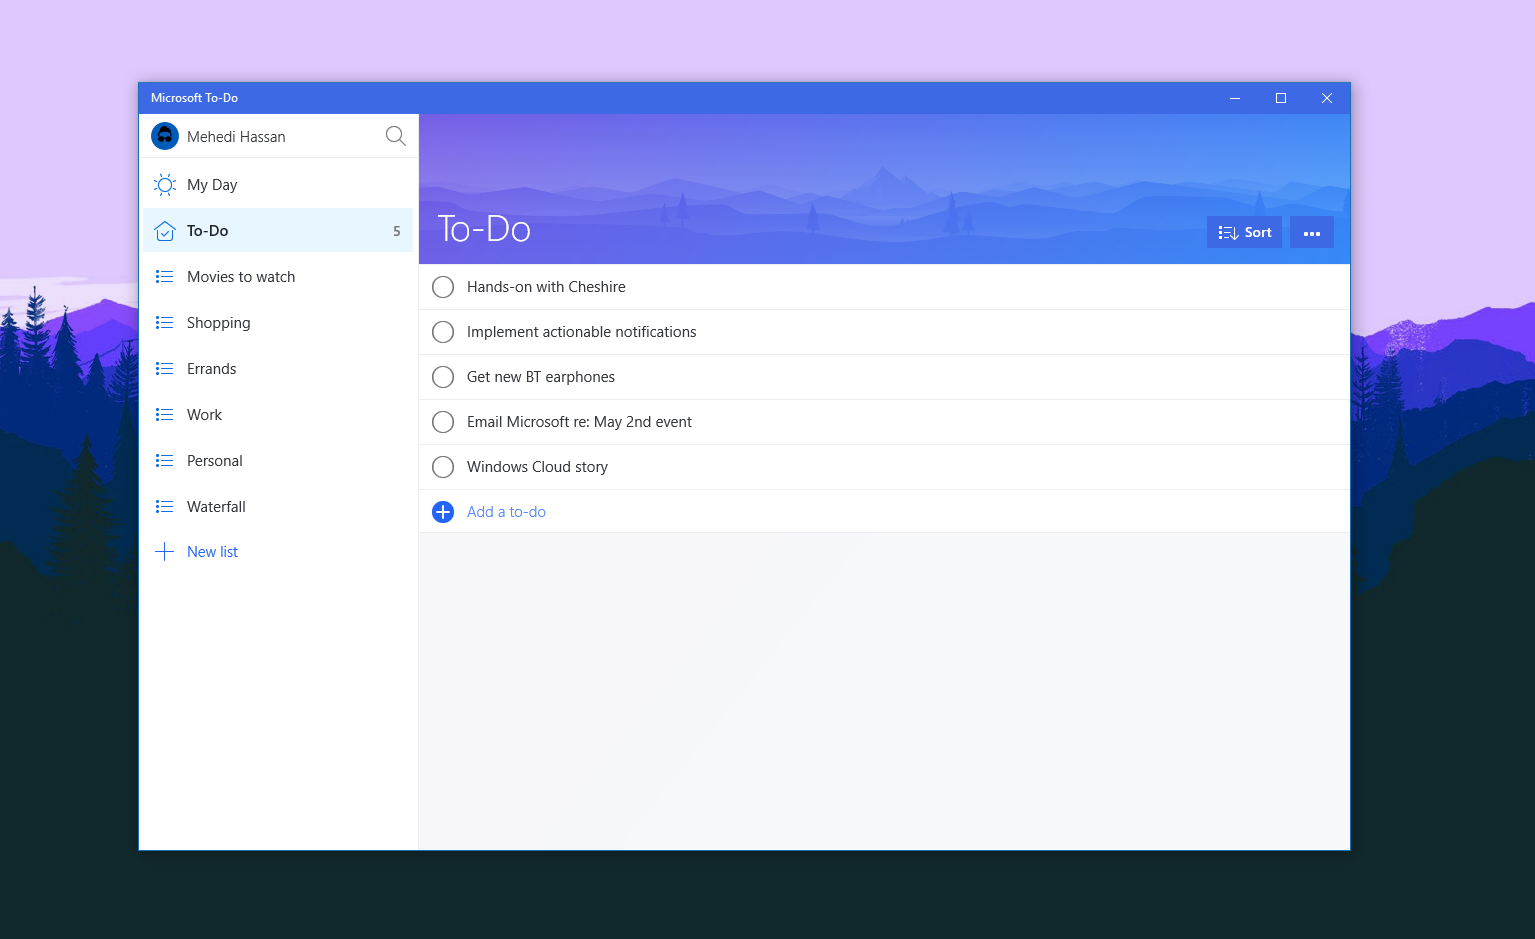 Microsoft is integrating the To-Do app with the Mail and